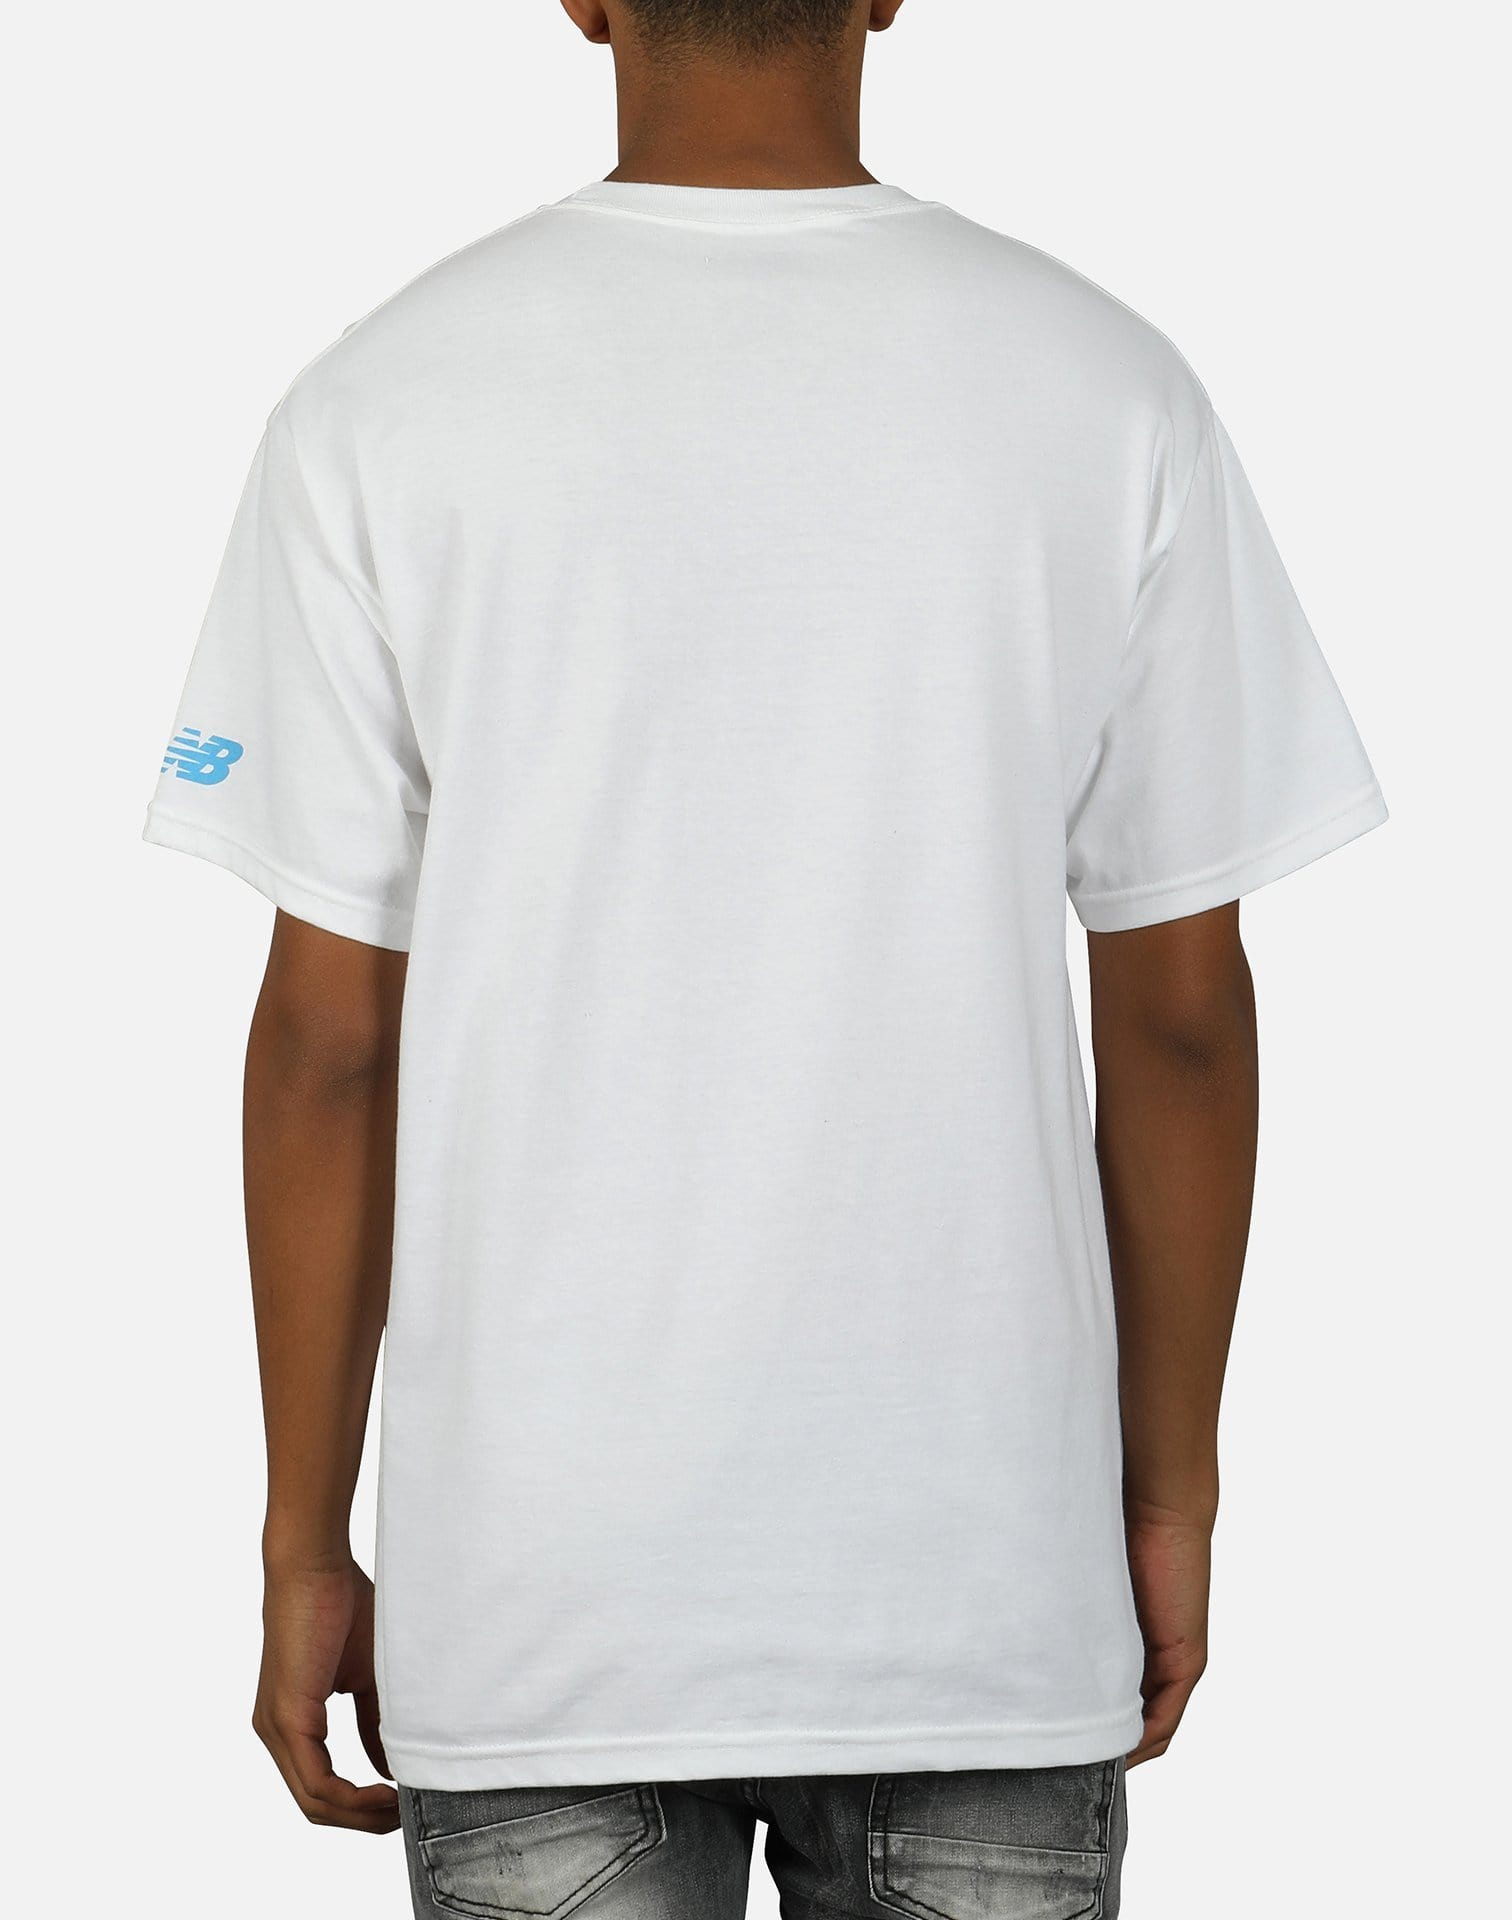 New Balance Men's 990 Fast Lane SMU Tee